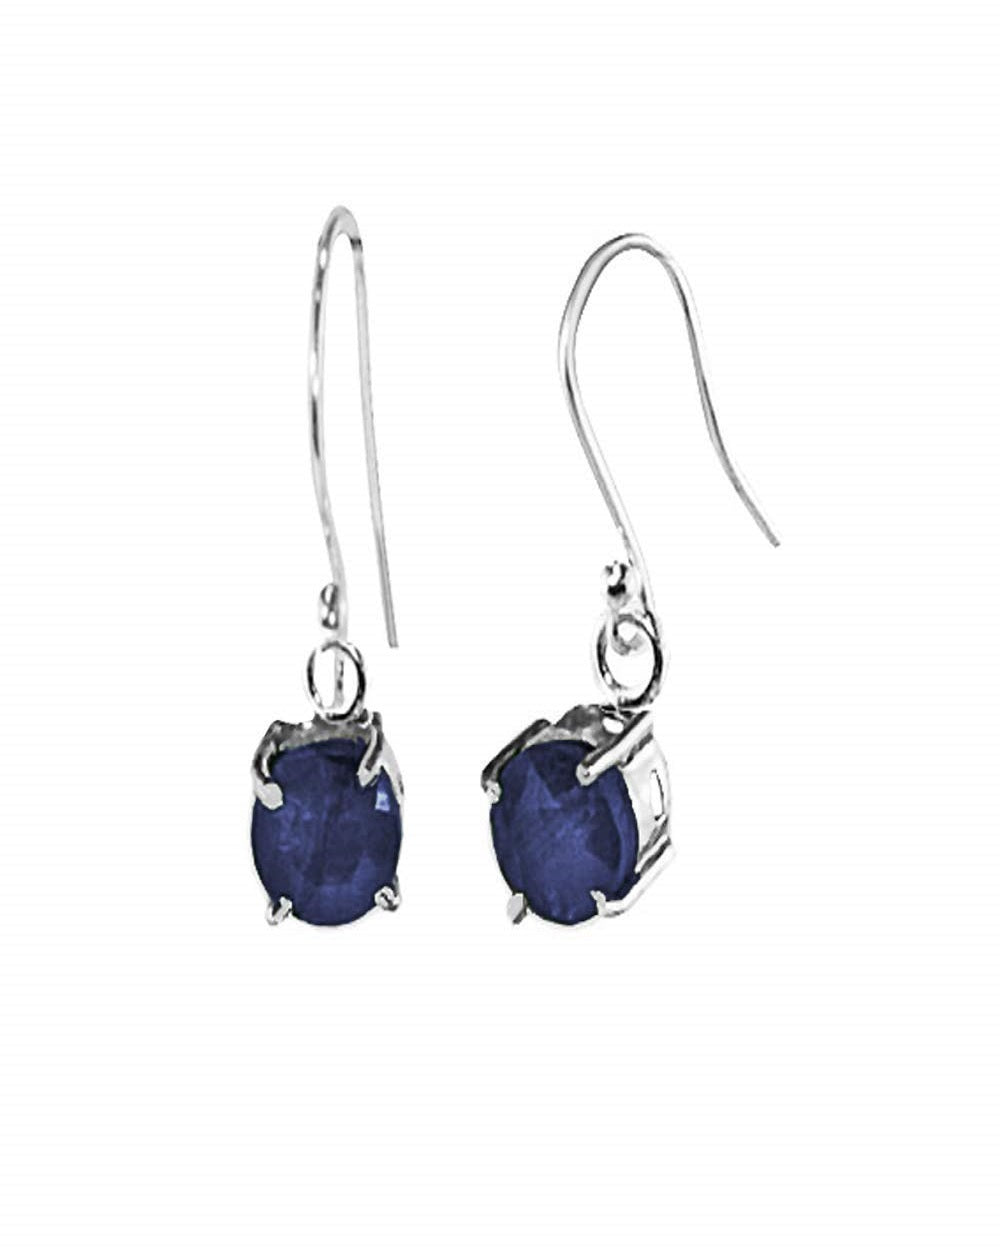 Venus Cushion Cut Raw Sapphire Earrings in Sterling Silver